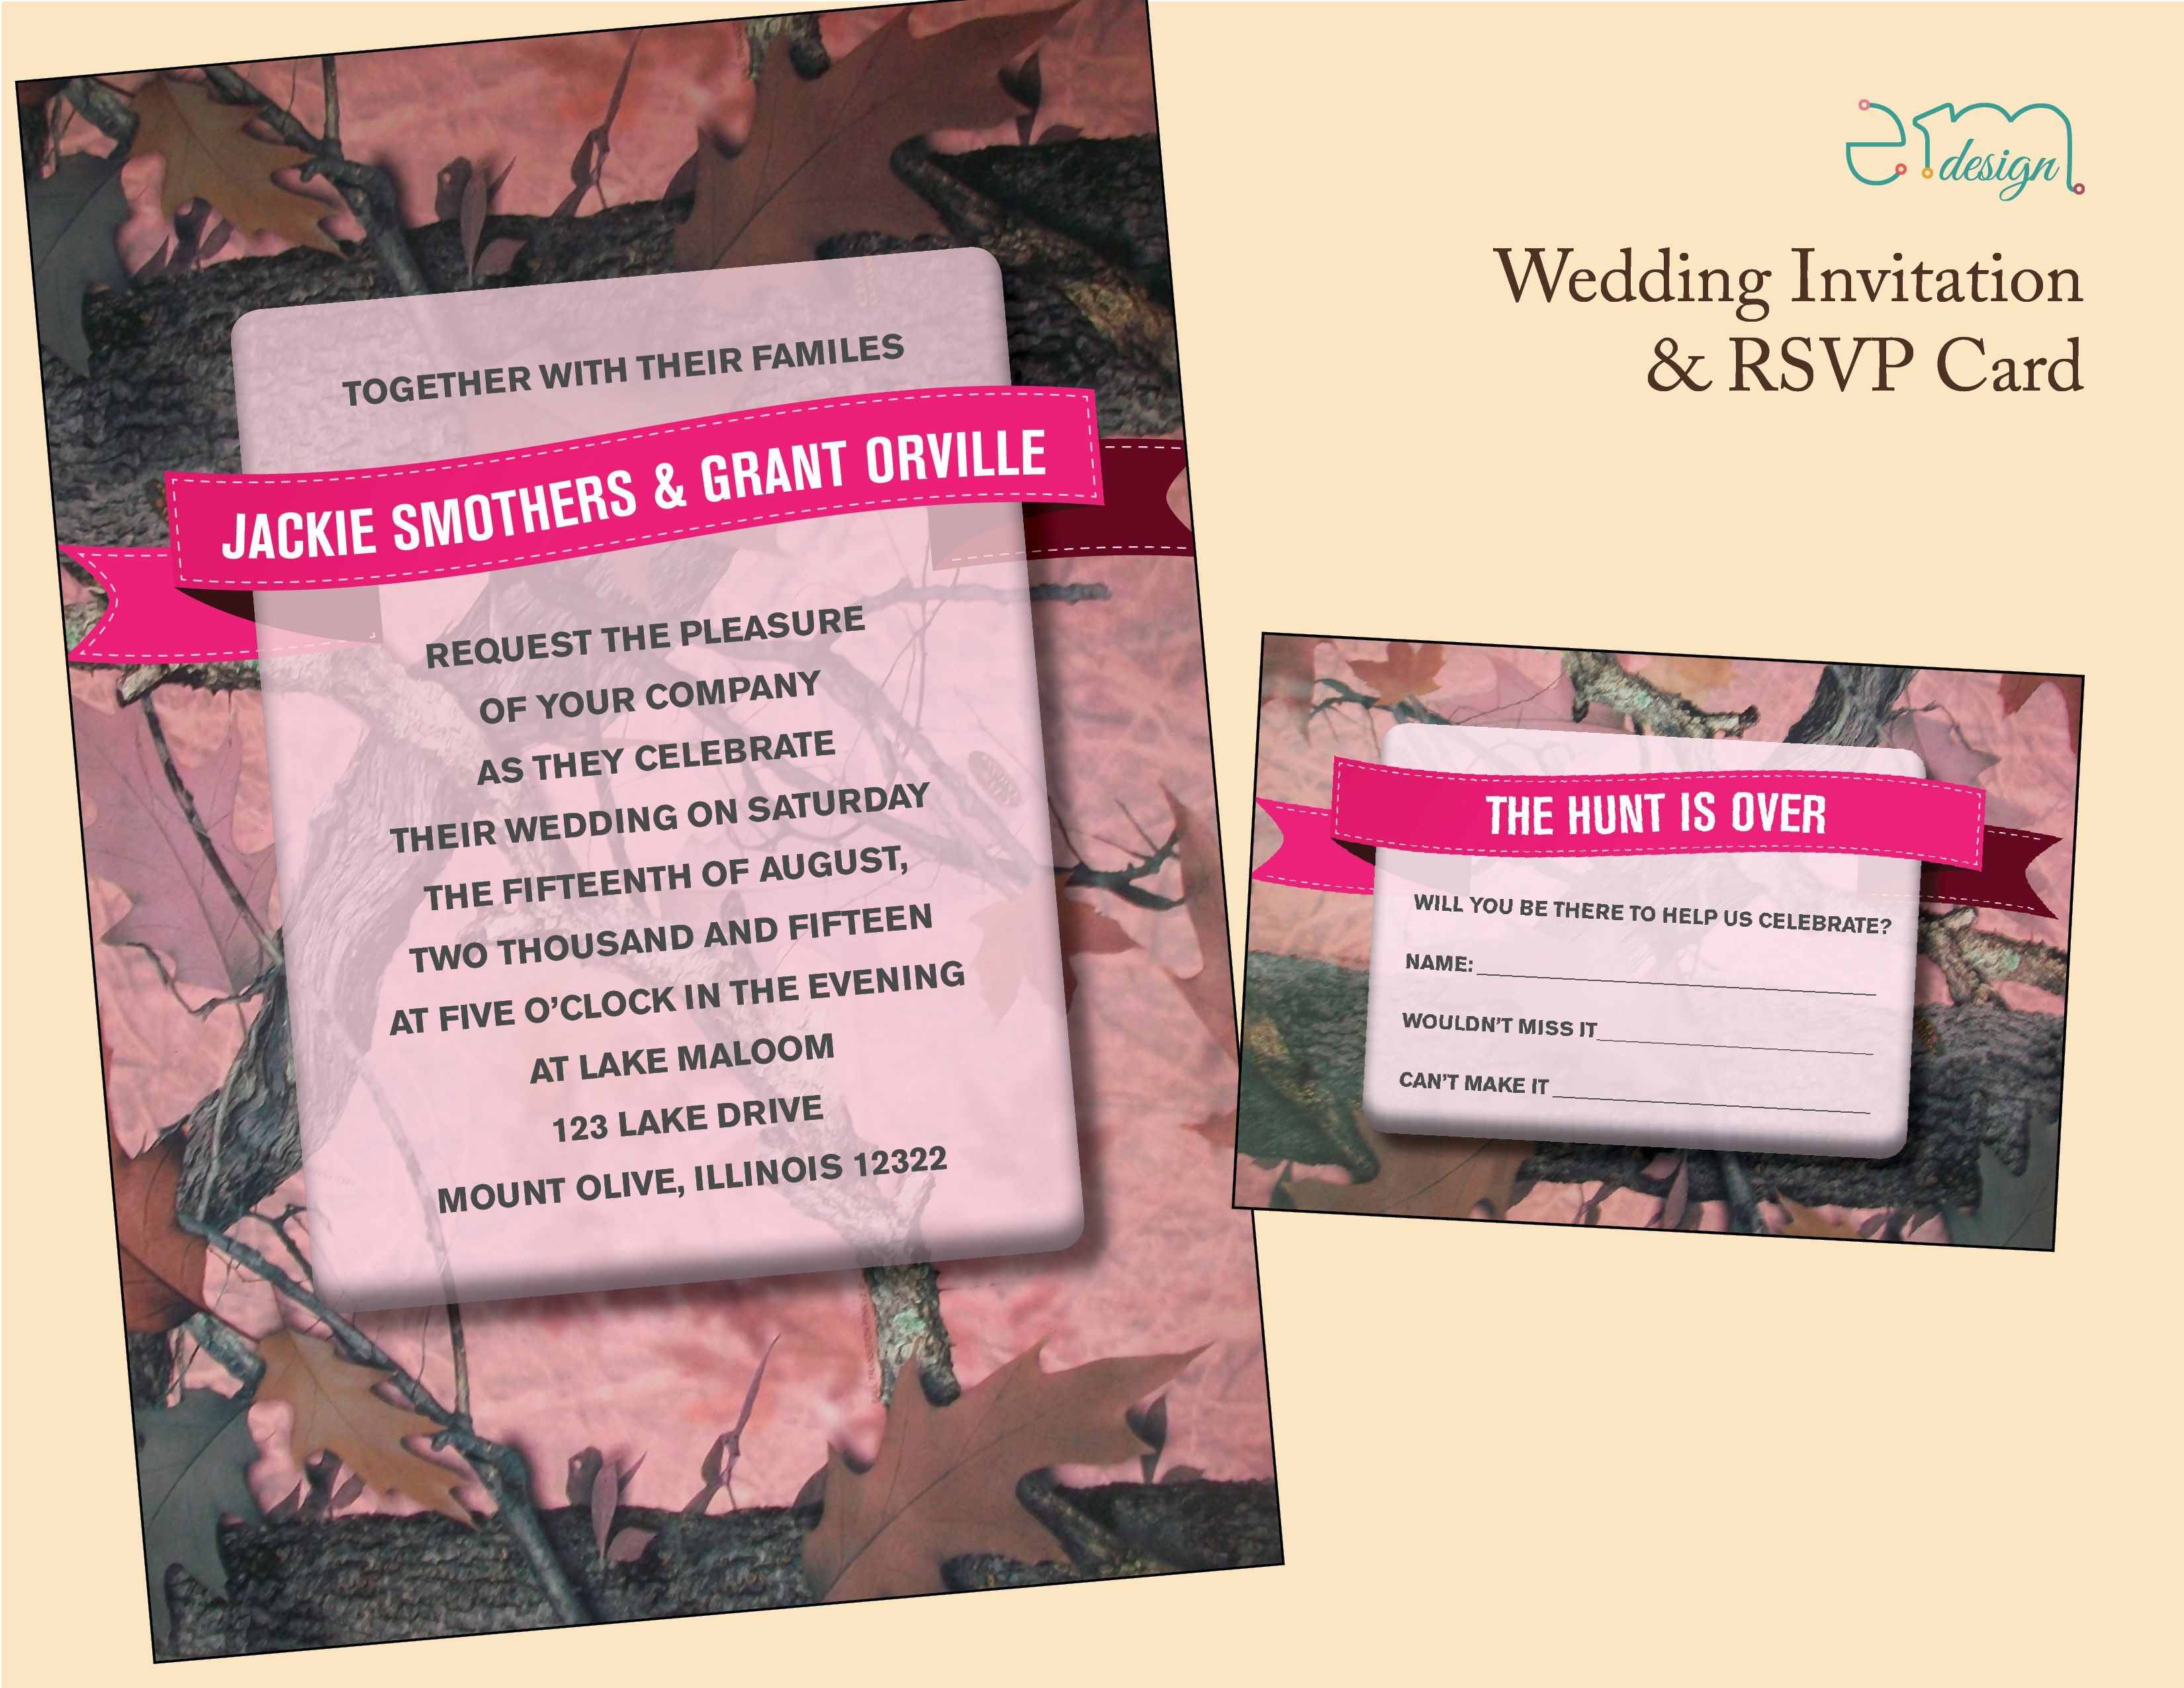 Camo Wedding Invitation, Hunt is Over RSVP Card Camouflage ...